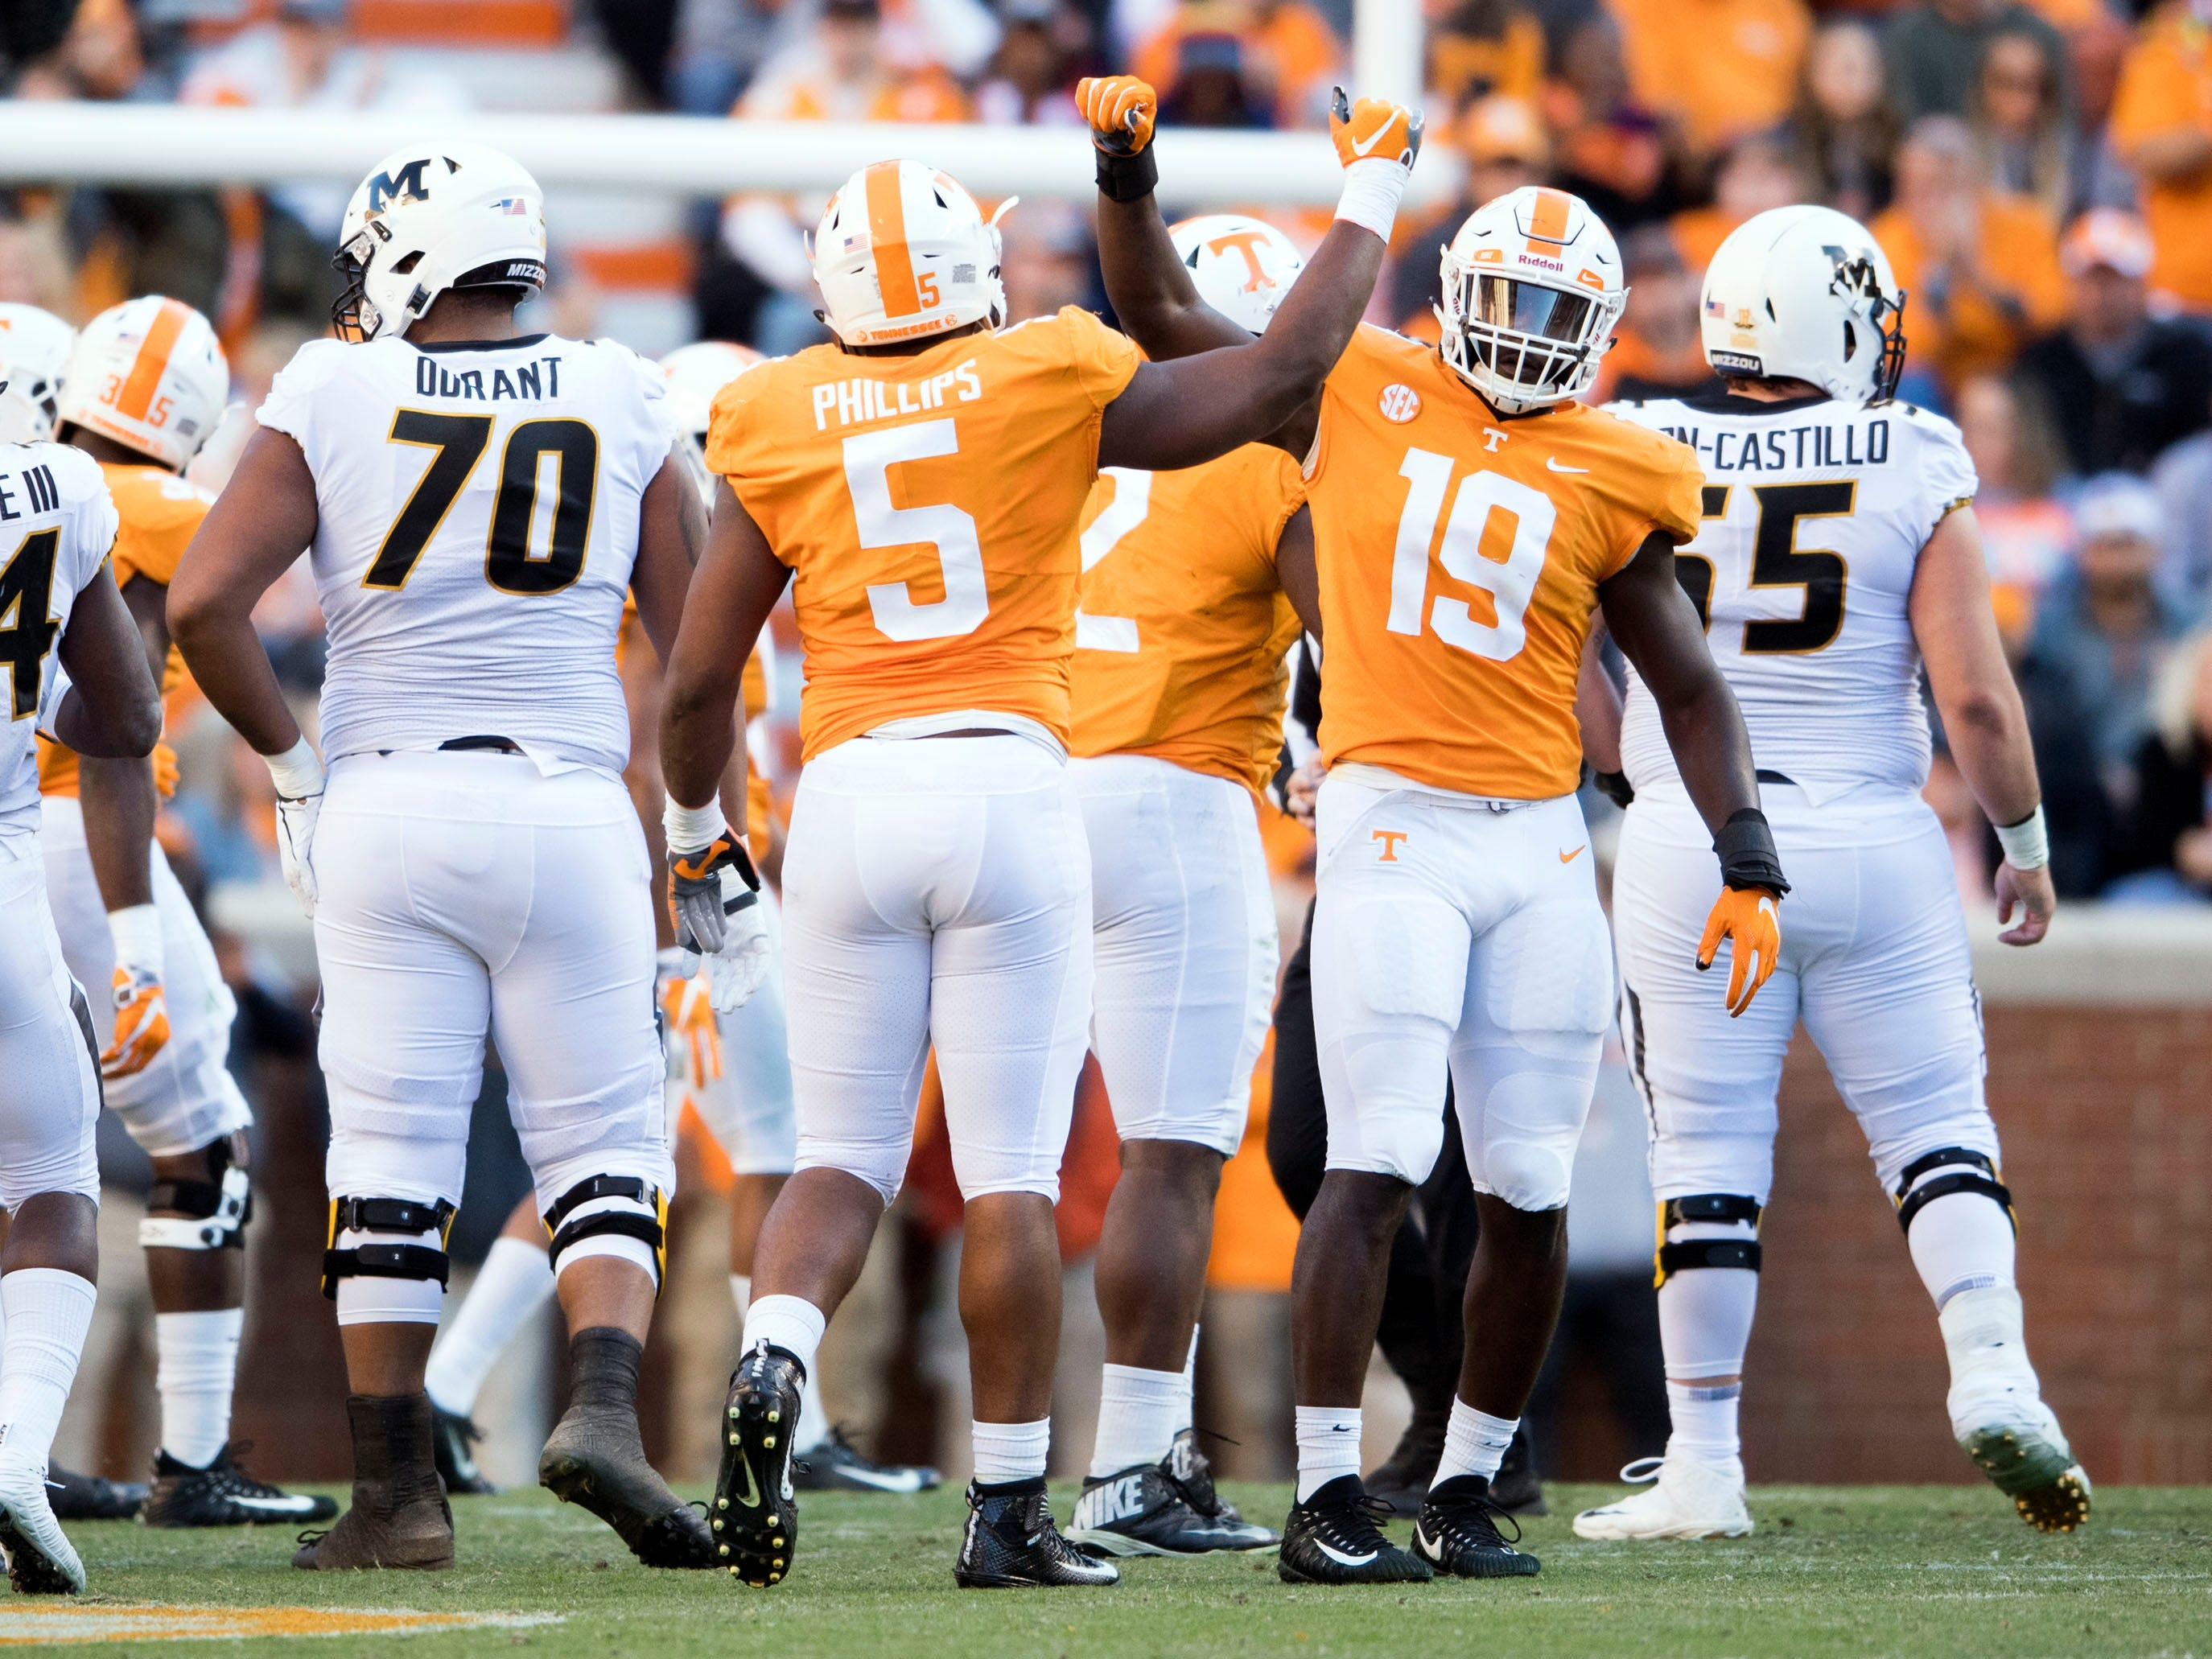 Tennessee defensive lineman Kyle Phillips (5) and linebacker Darrell Taylor (19) celebrate after making a stop against on Missouri on Saturday, November 17, 2018.